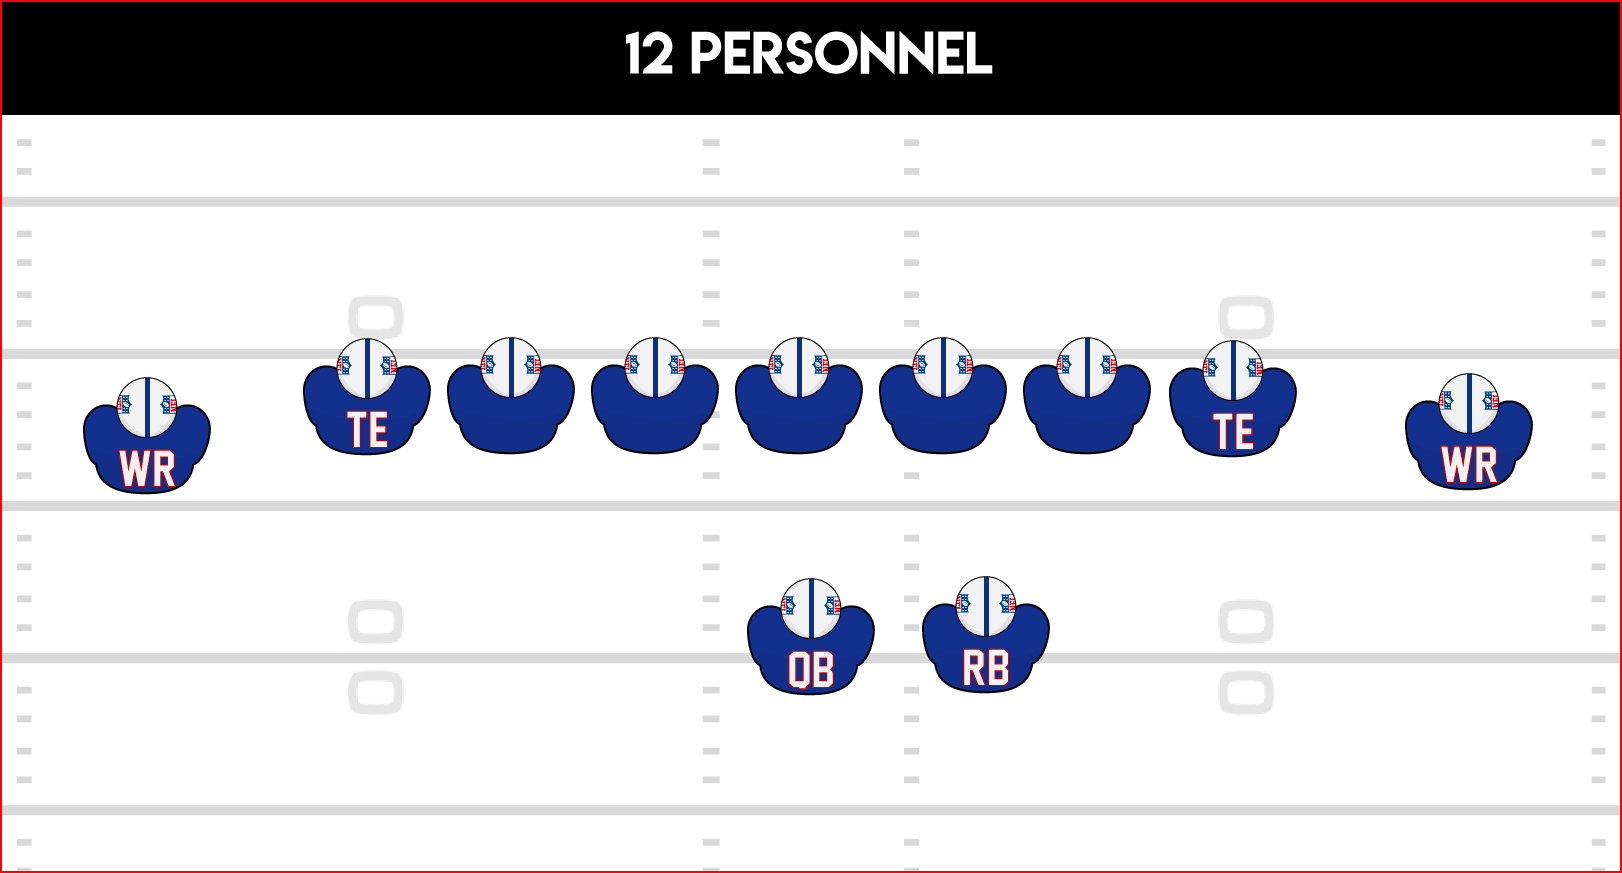 What is 11 personnel? A guide to the NFL's personnel packages.